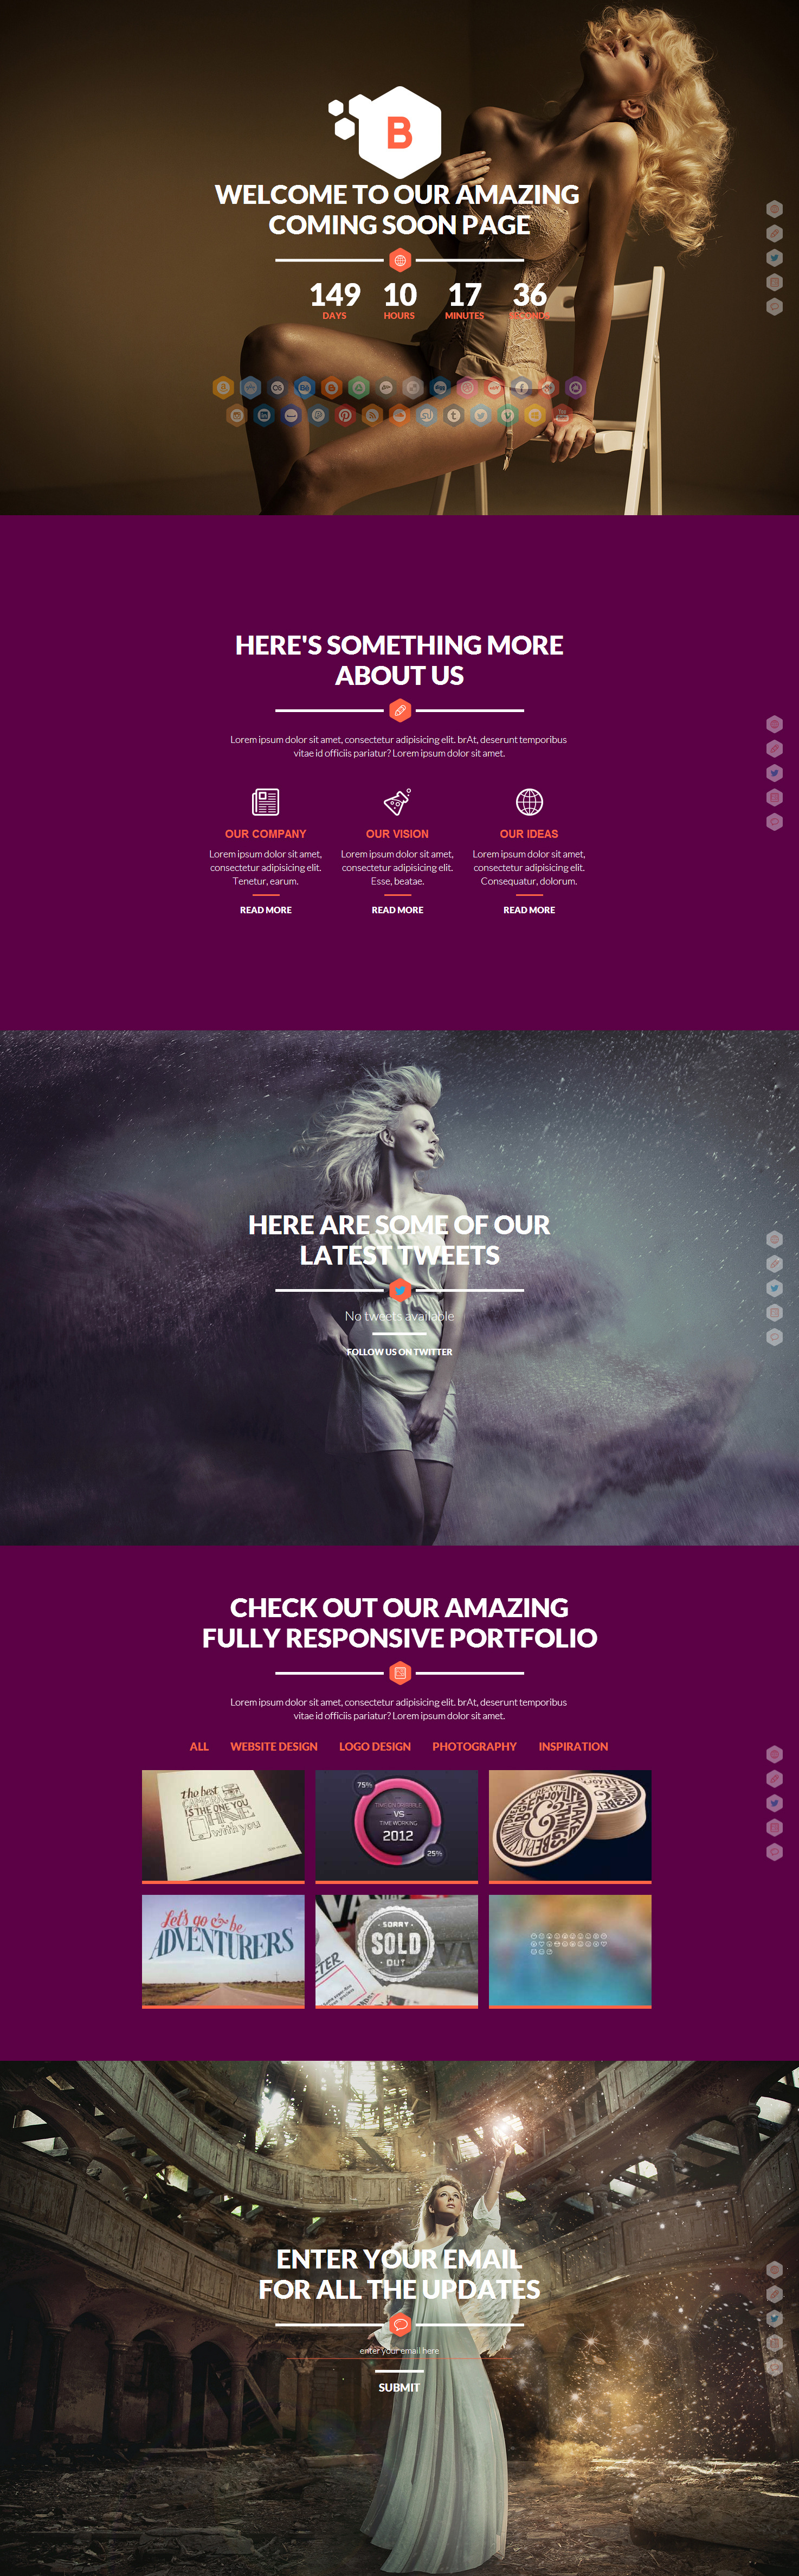 Blurred - Responsive Under Construction Template